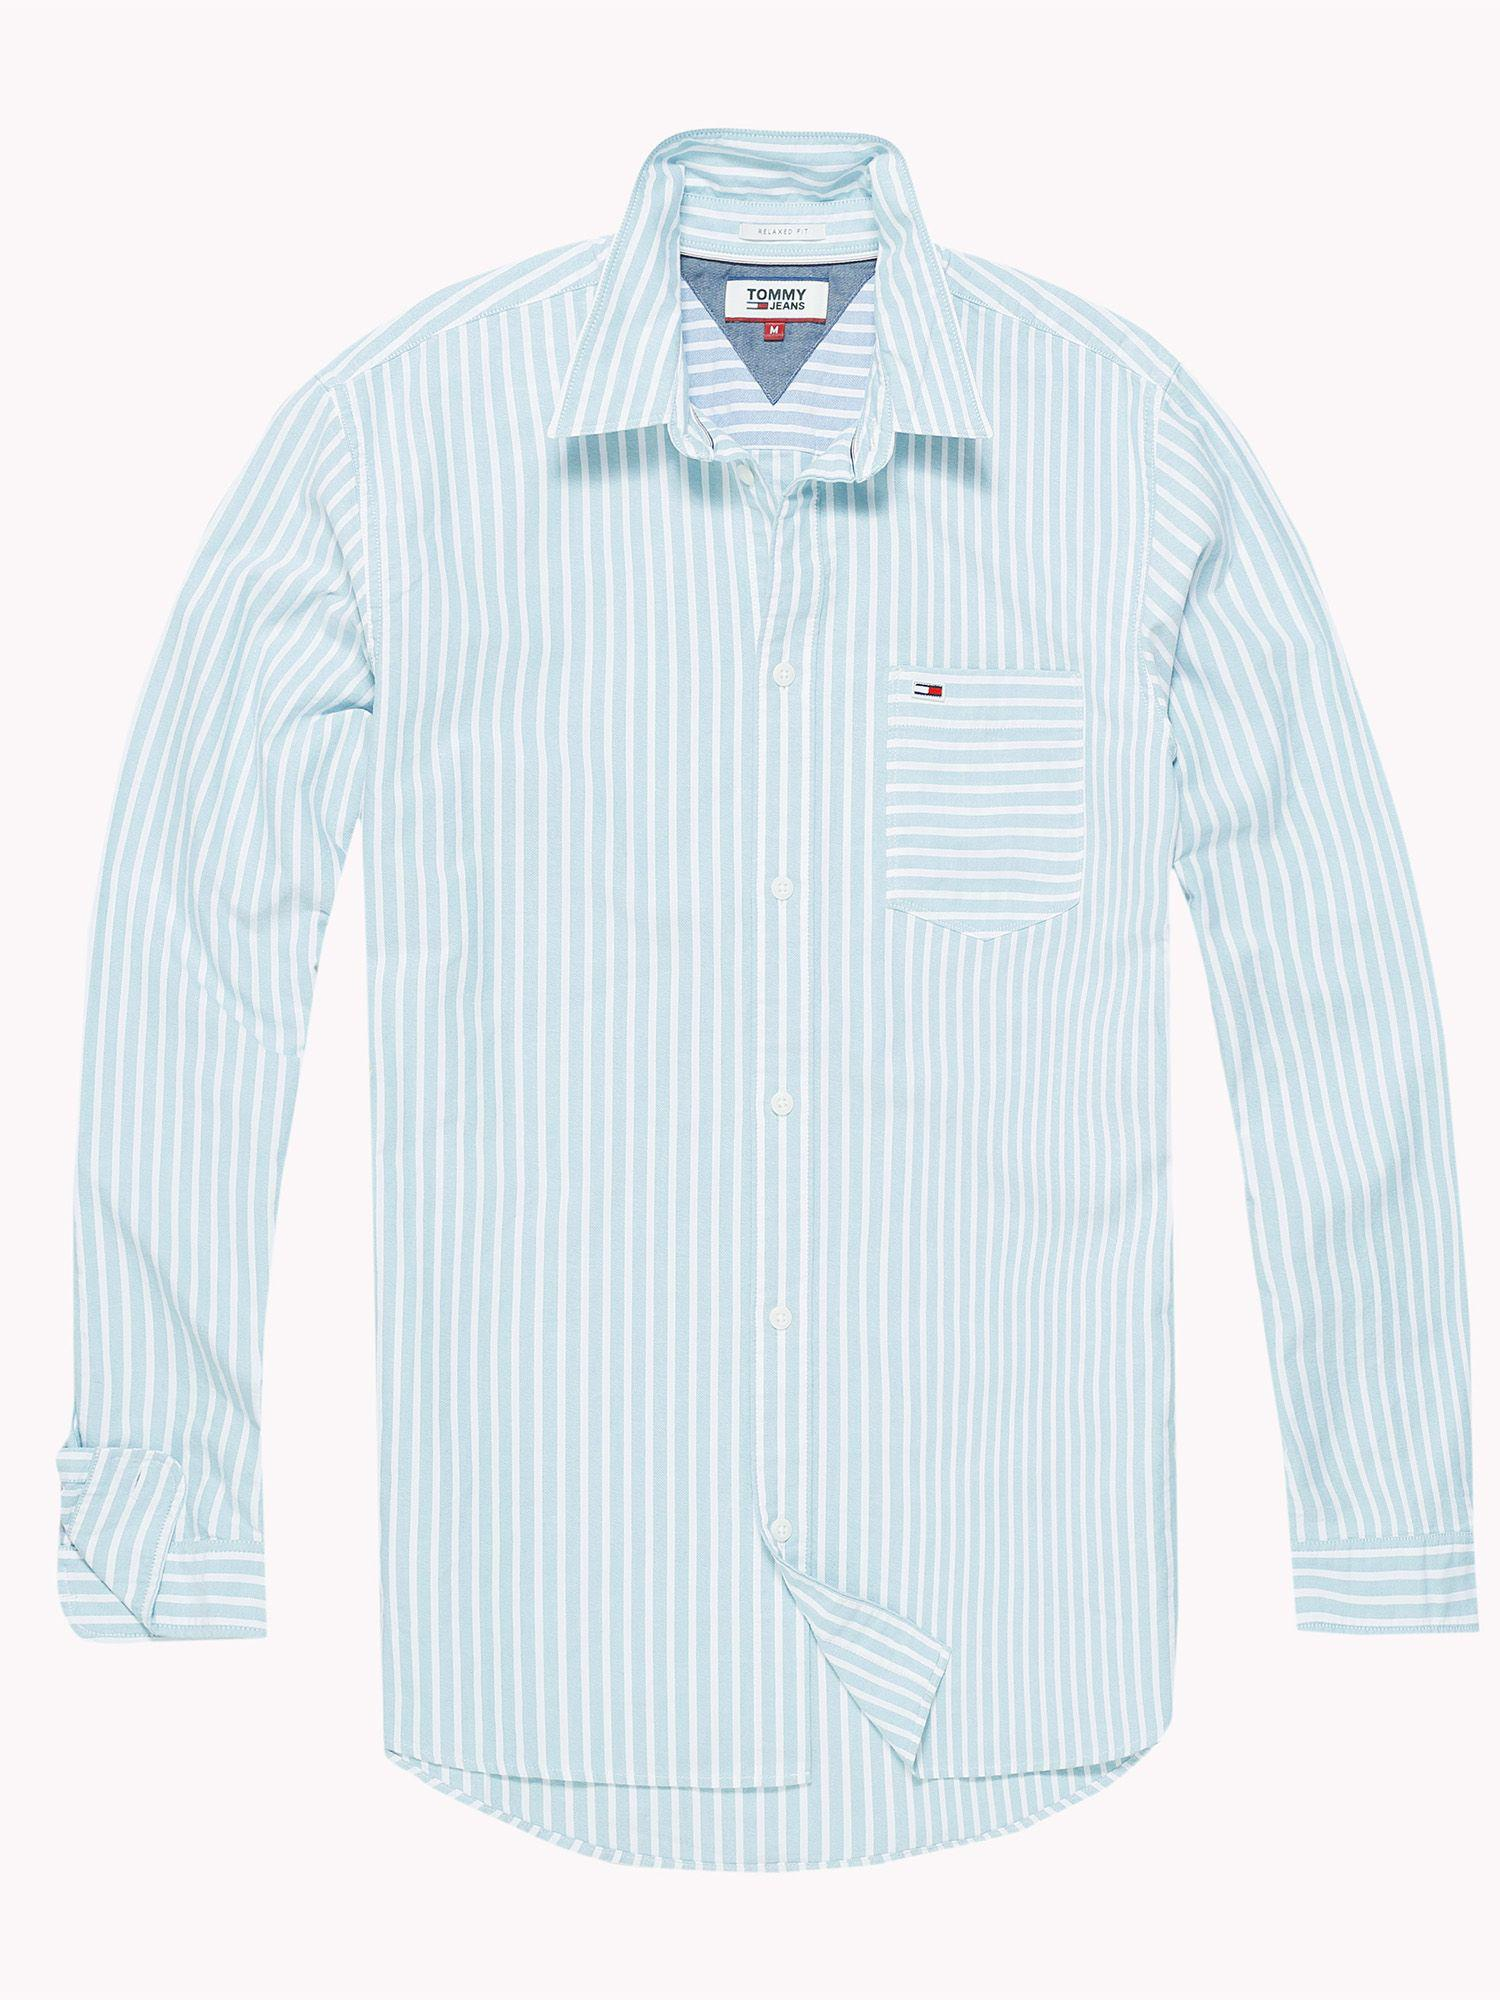 88905d44547a Tommy Hilfiger Men s Tommy Jeans Classic Stripe Shirt in Blue for ...